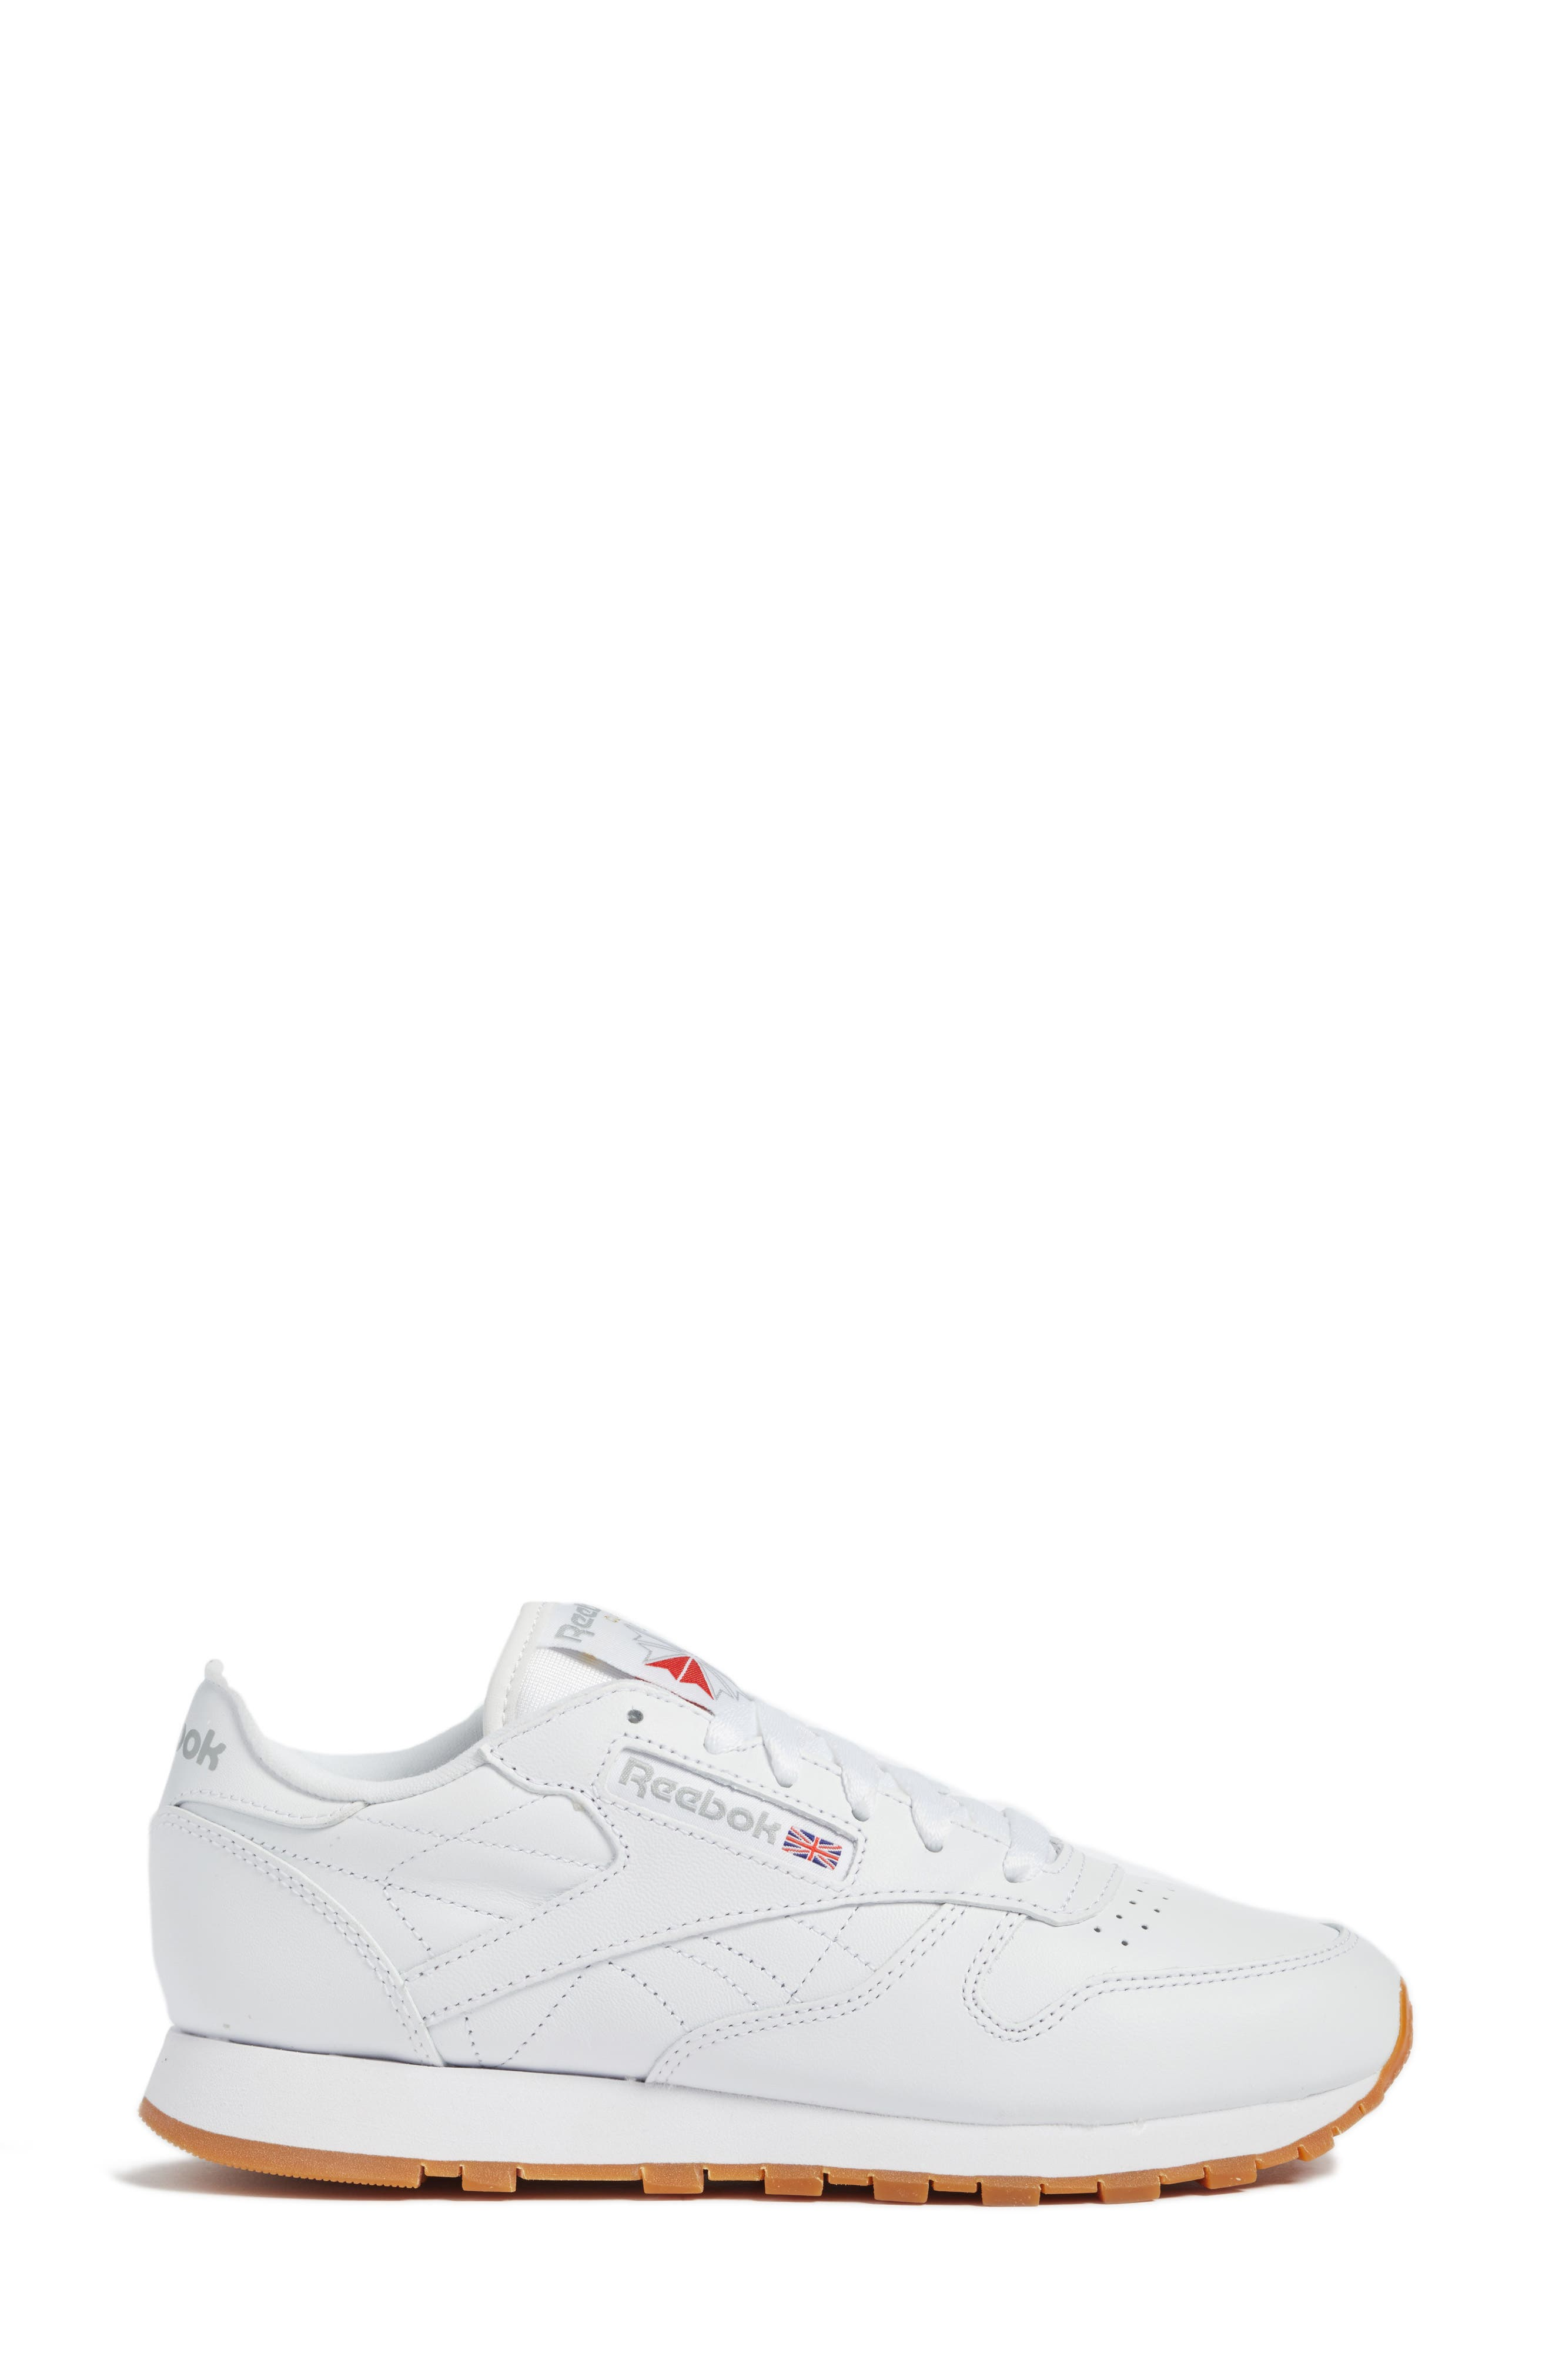 REEBOK,                             Classic Leather Sneaker,                             Alternate thumbnail 3, color,                             US-WHITE/ GUM